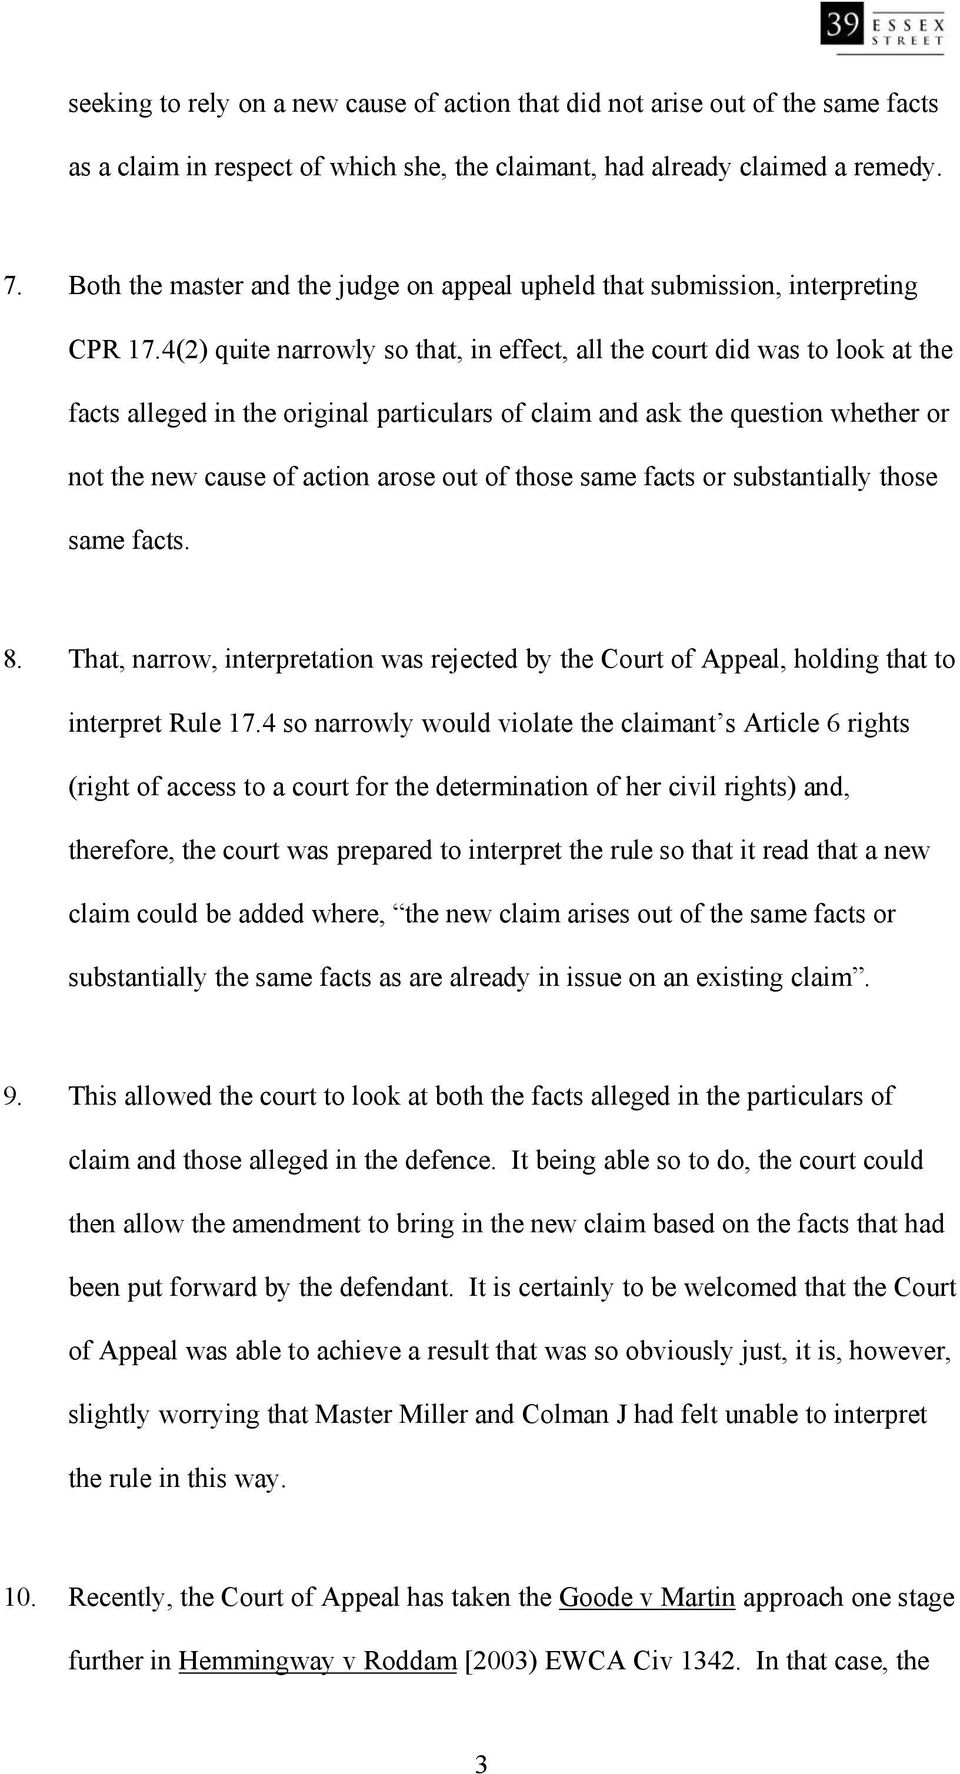 4(2) quite narrowly so that, in effect, all the court did was to look at the facts alleged in the original particulars of claim and ask the question whether or not the new cause of action arose out